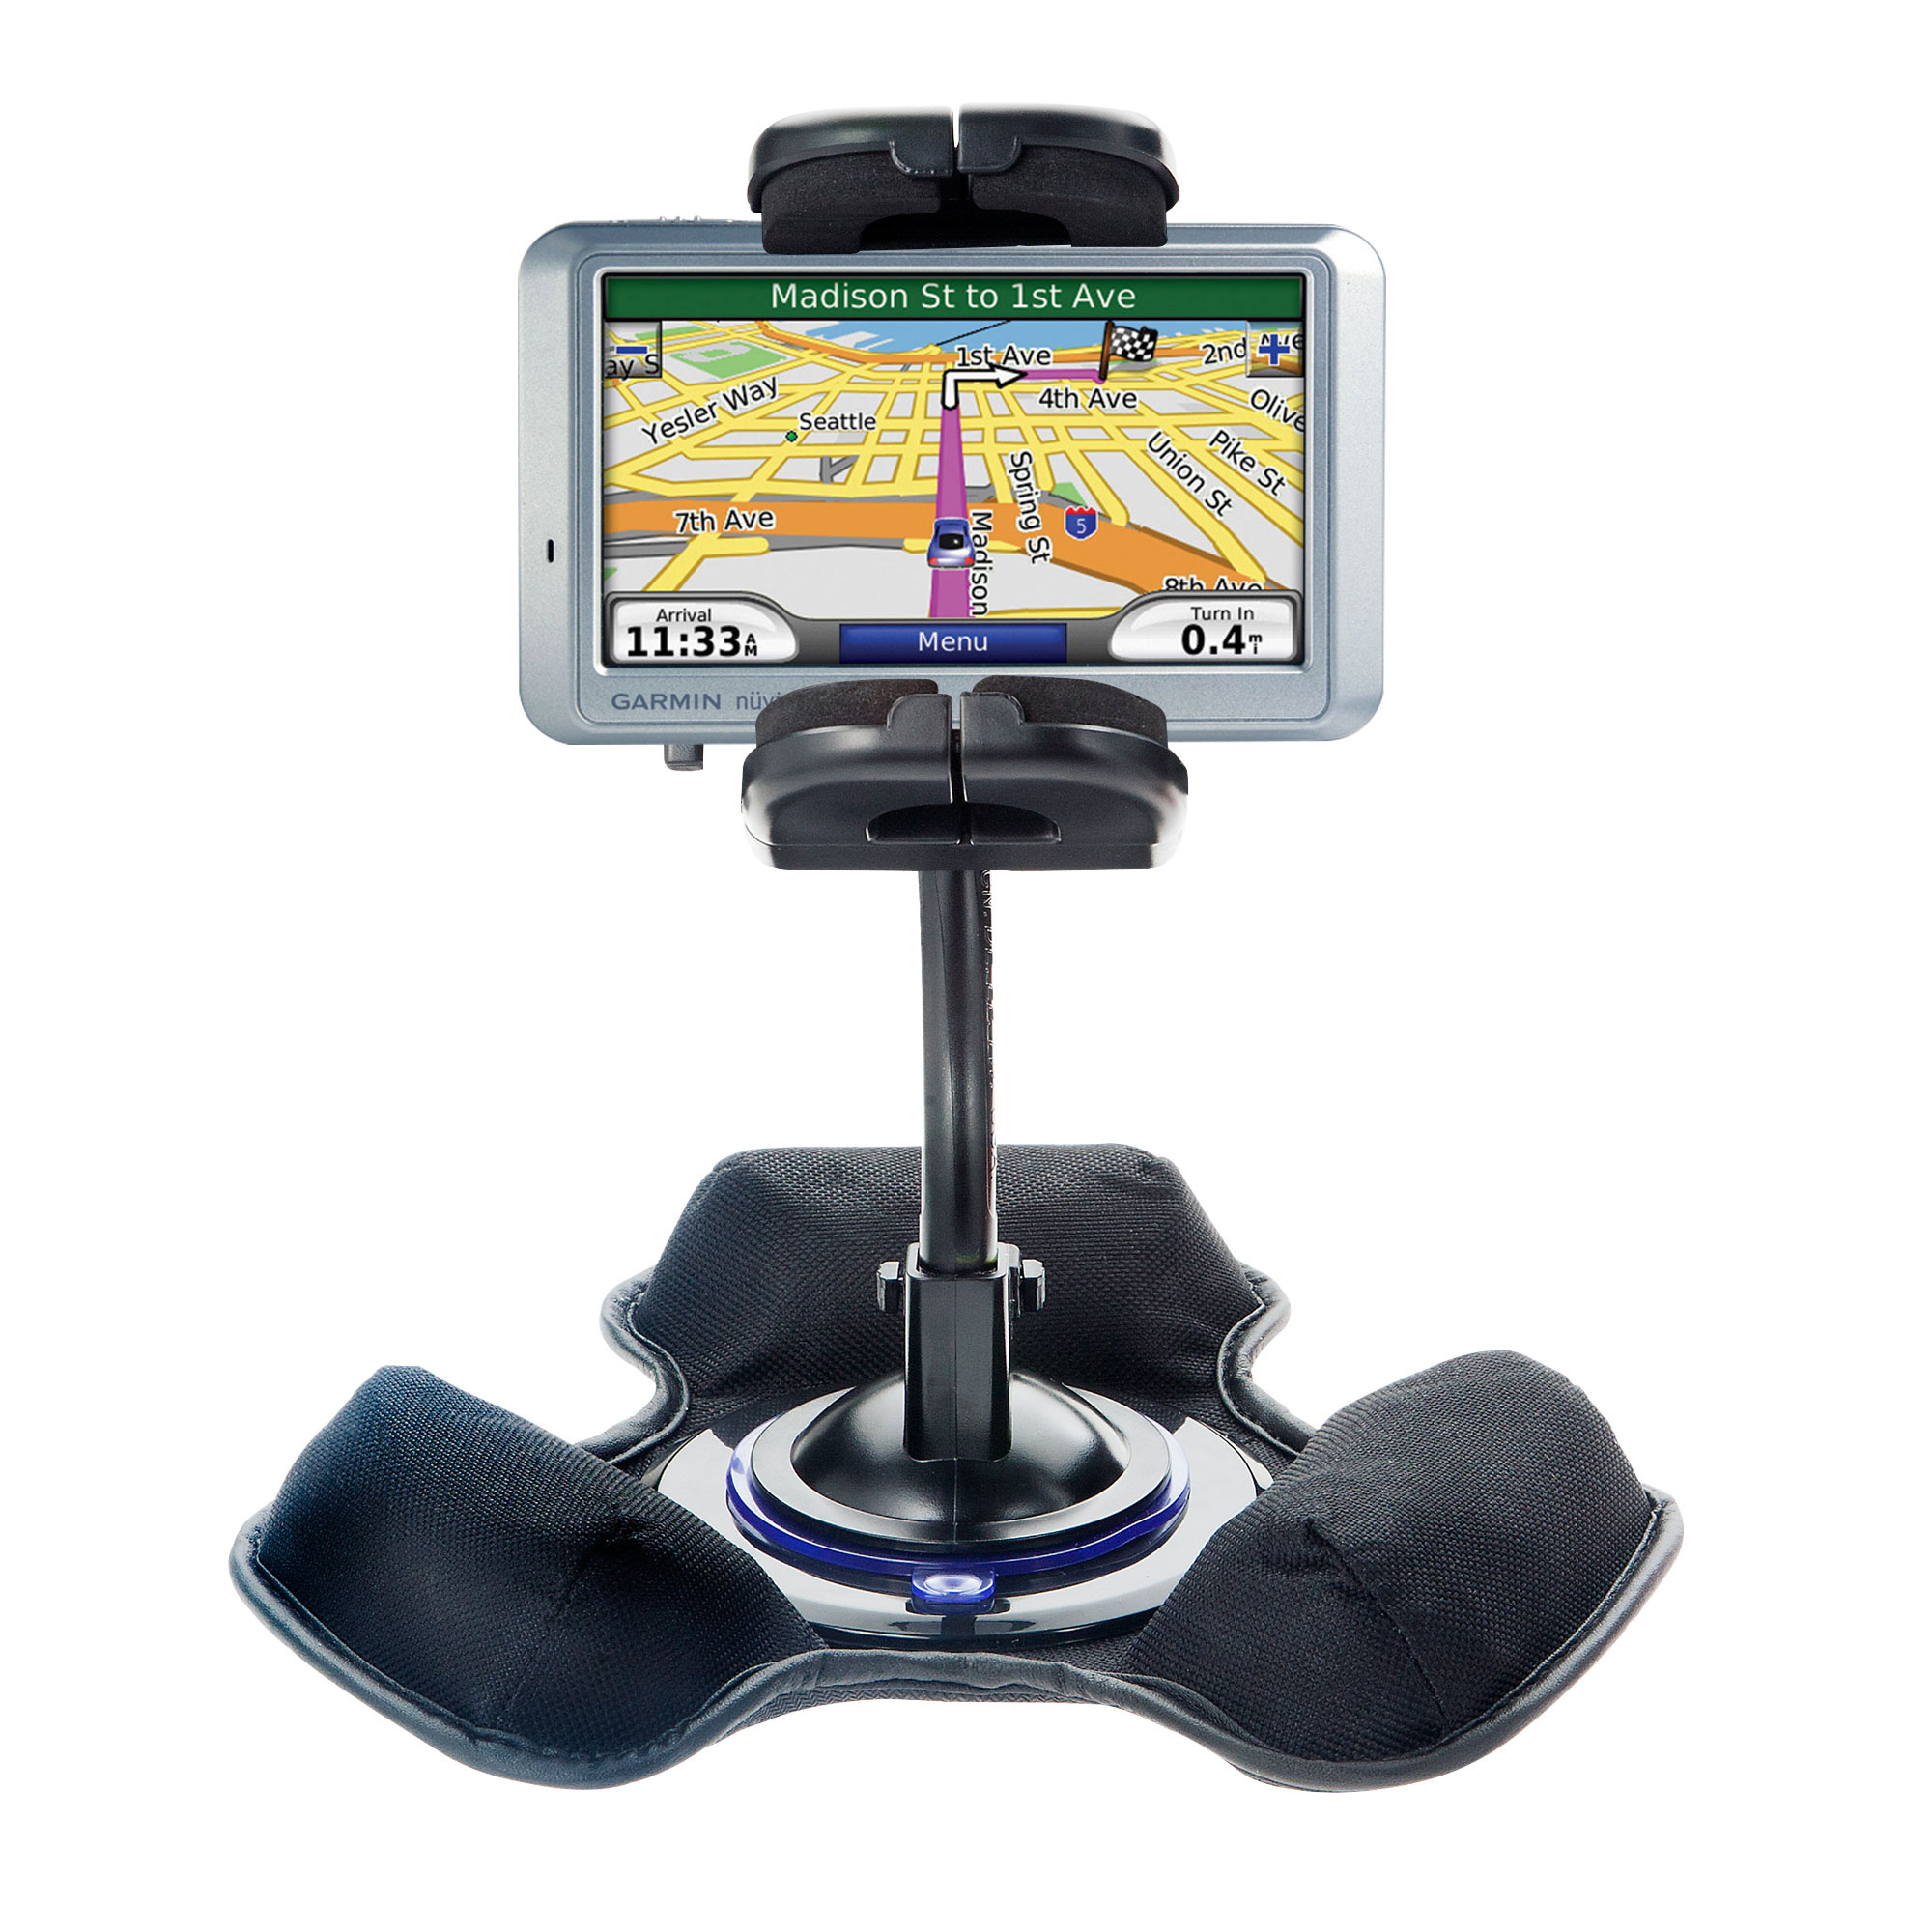 Dash and Windshield Holder compatible with the Garmin Nuvi 710